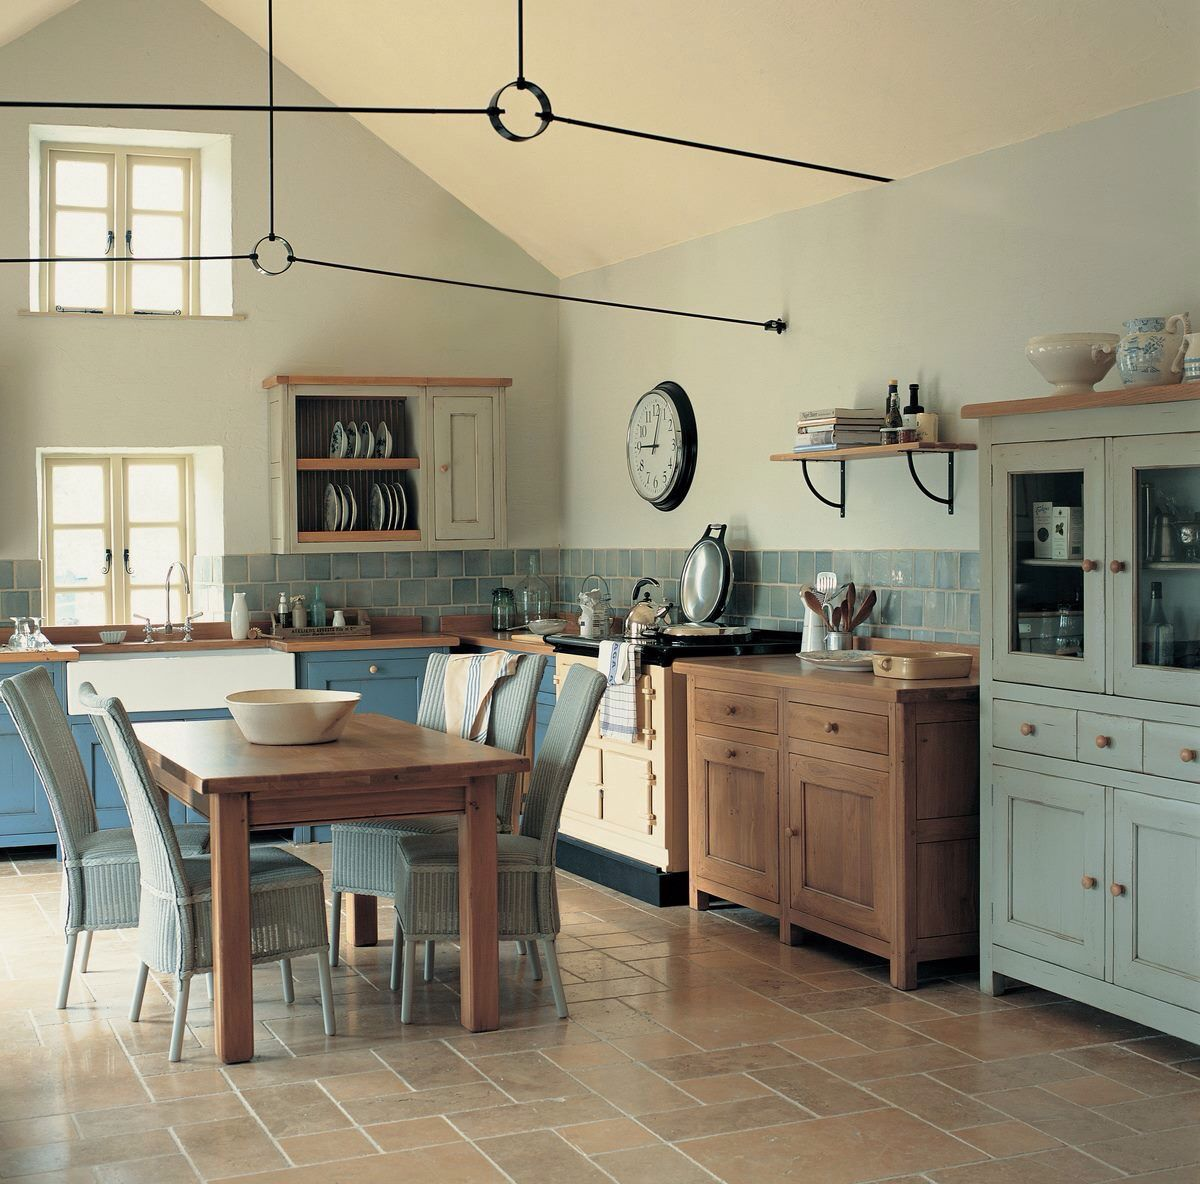 Ordinaire Very Nice Non Fitted Kitchen, Good Colours Too · Cottage House DesignsCottage  StyleUnfitted ...